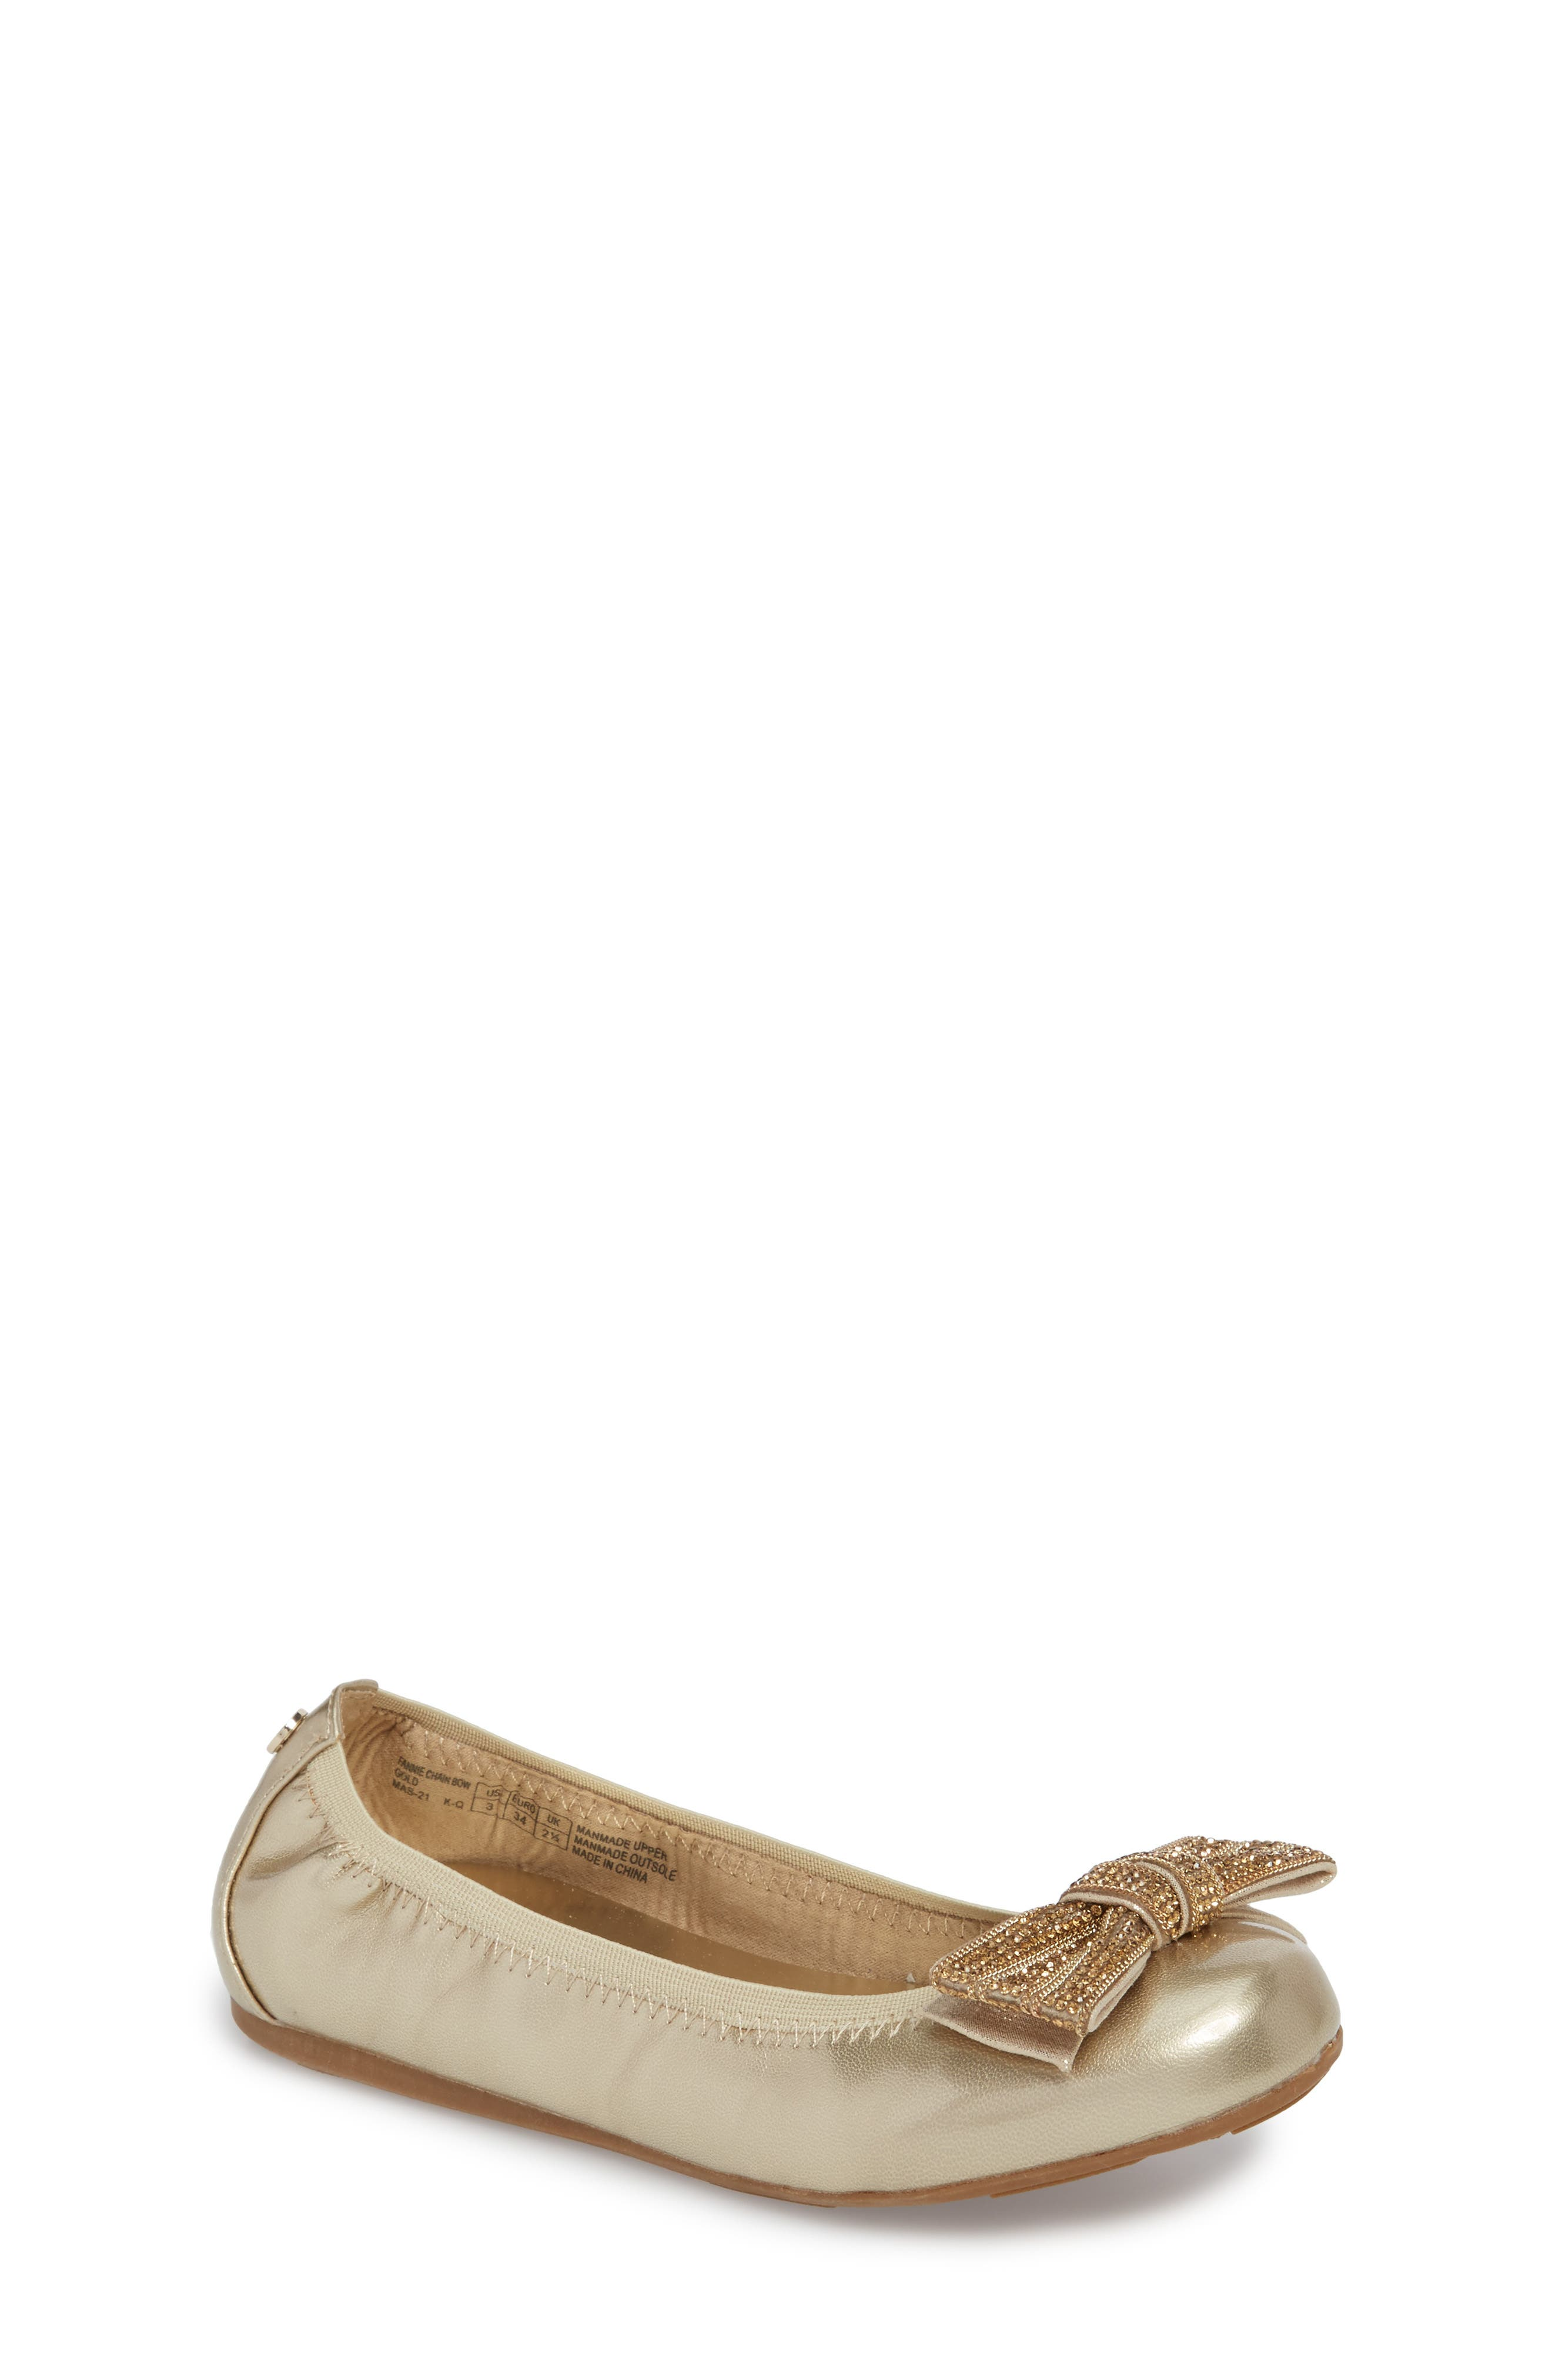 Fannie Embellished Bow Ballet Flat,                             Main thumbnail 3, color,